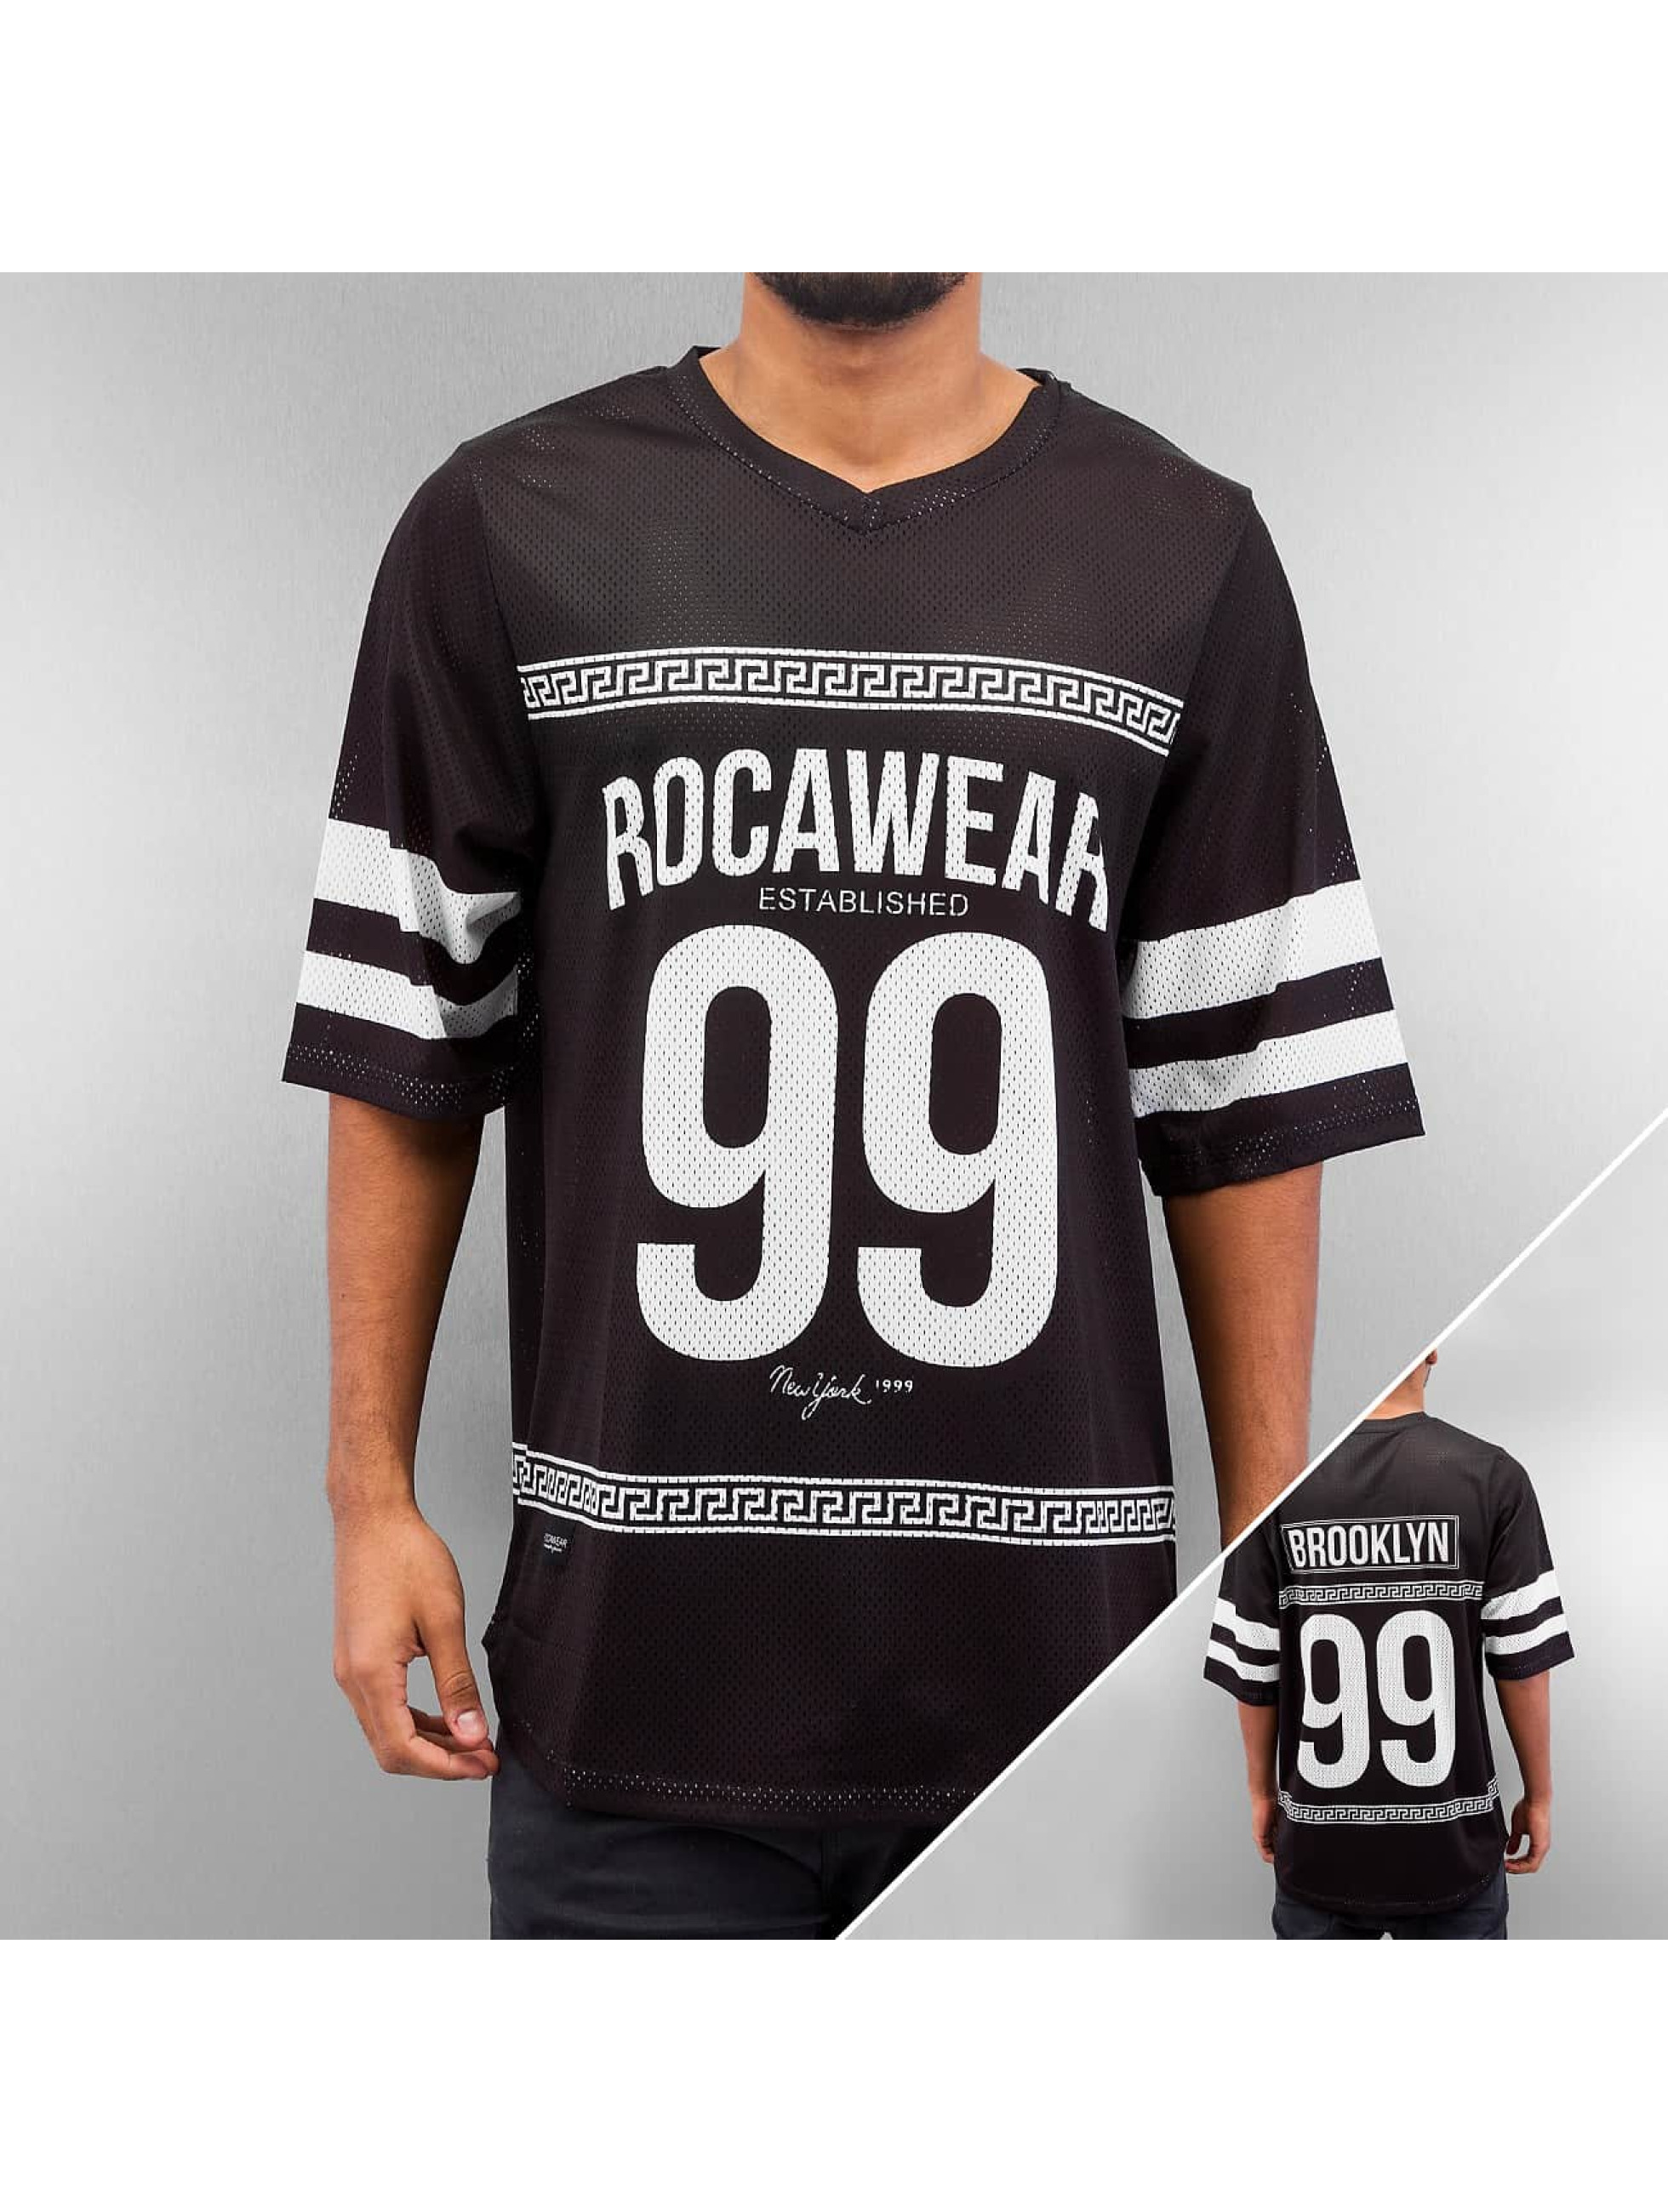 """Unsere """"Brand of the Month""""  Rocawear macht den Anfang  862d71599"""